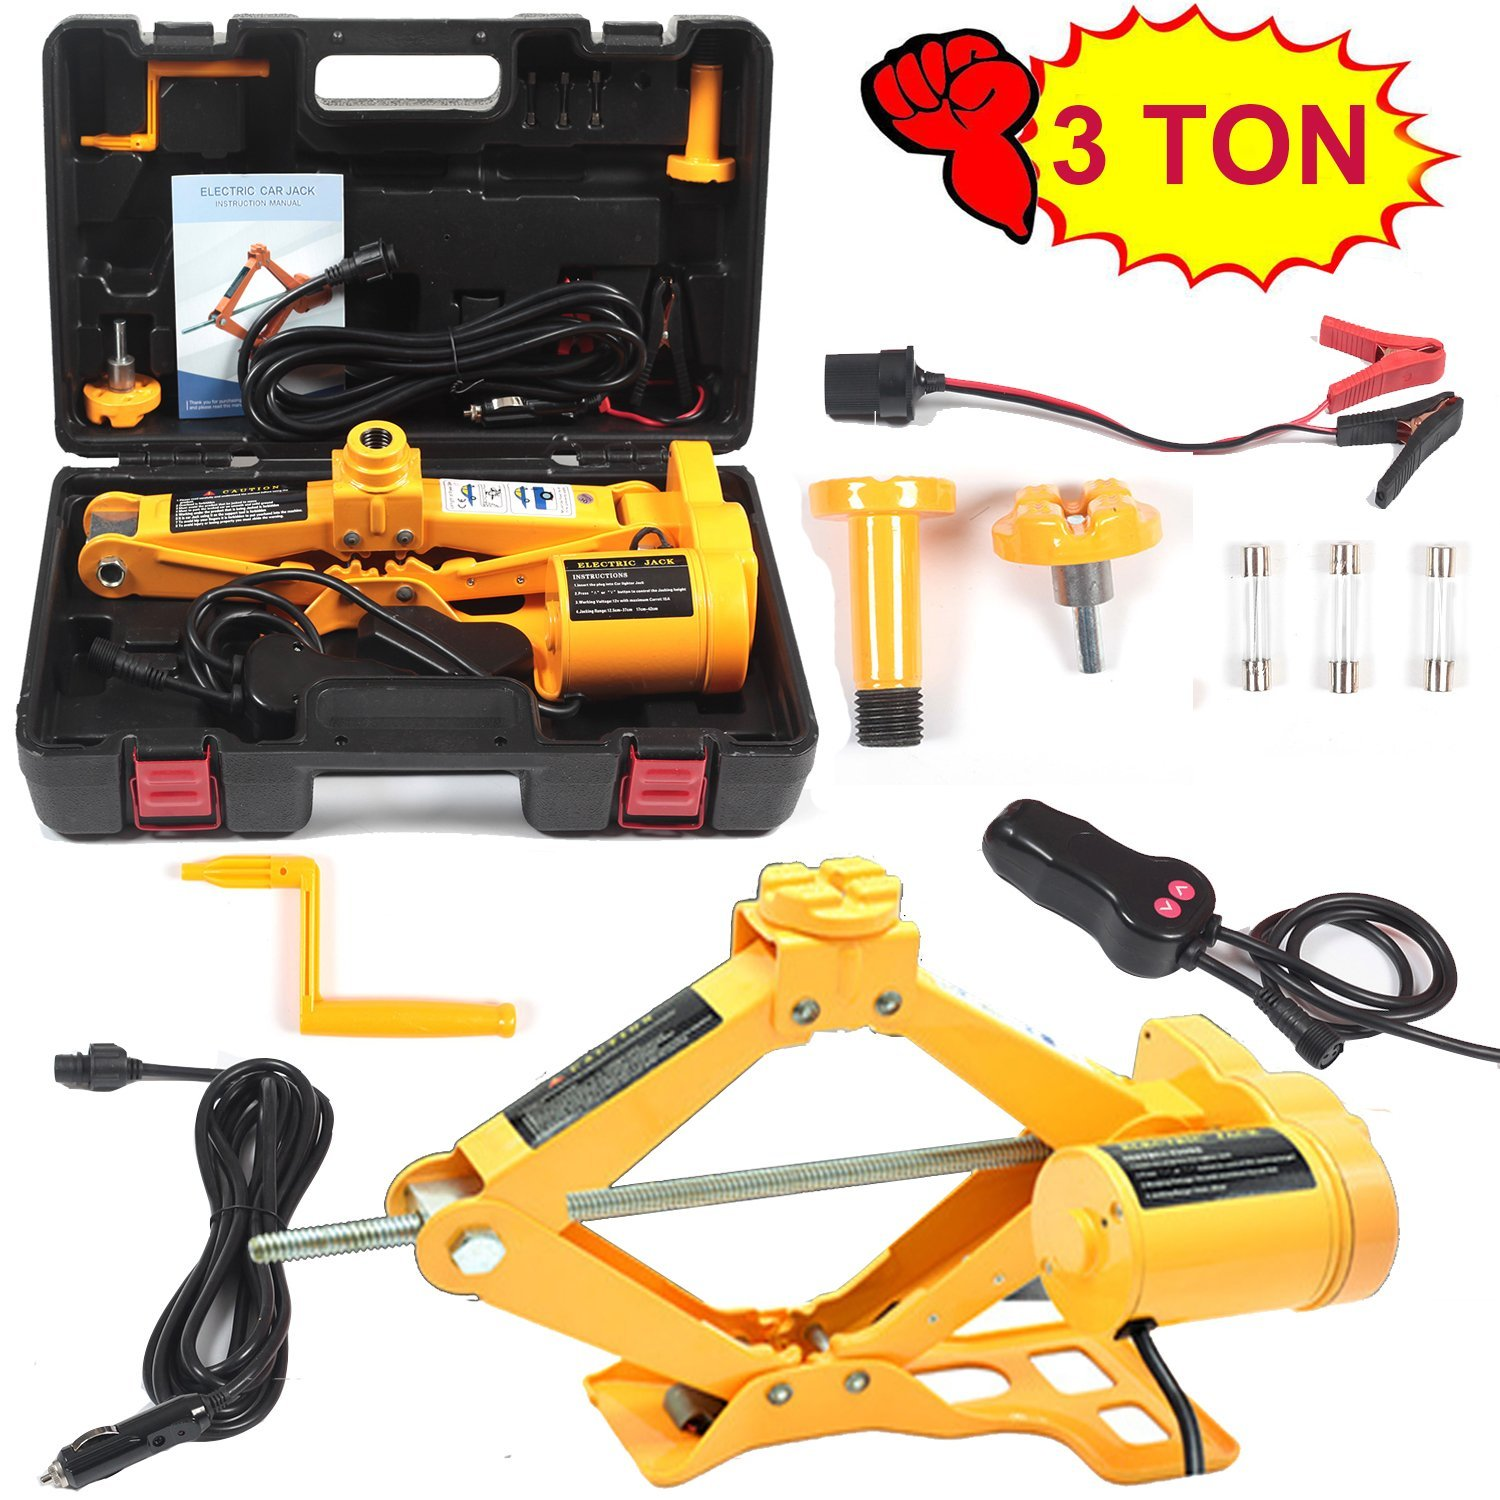 Amazoncom Electric Car Floor Jack 3 Ton All In One Automatic 12v